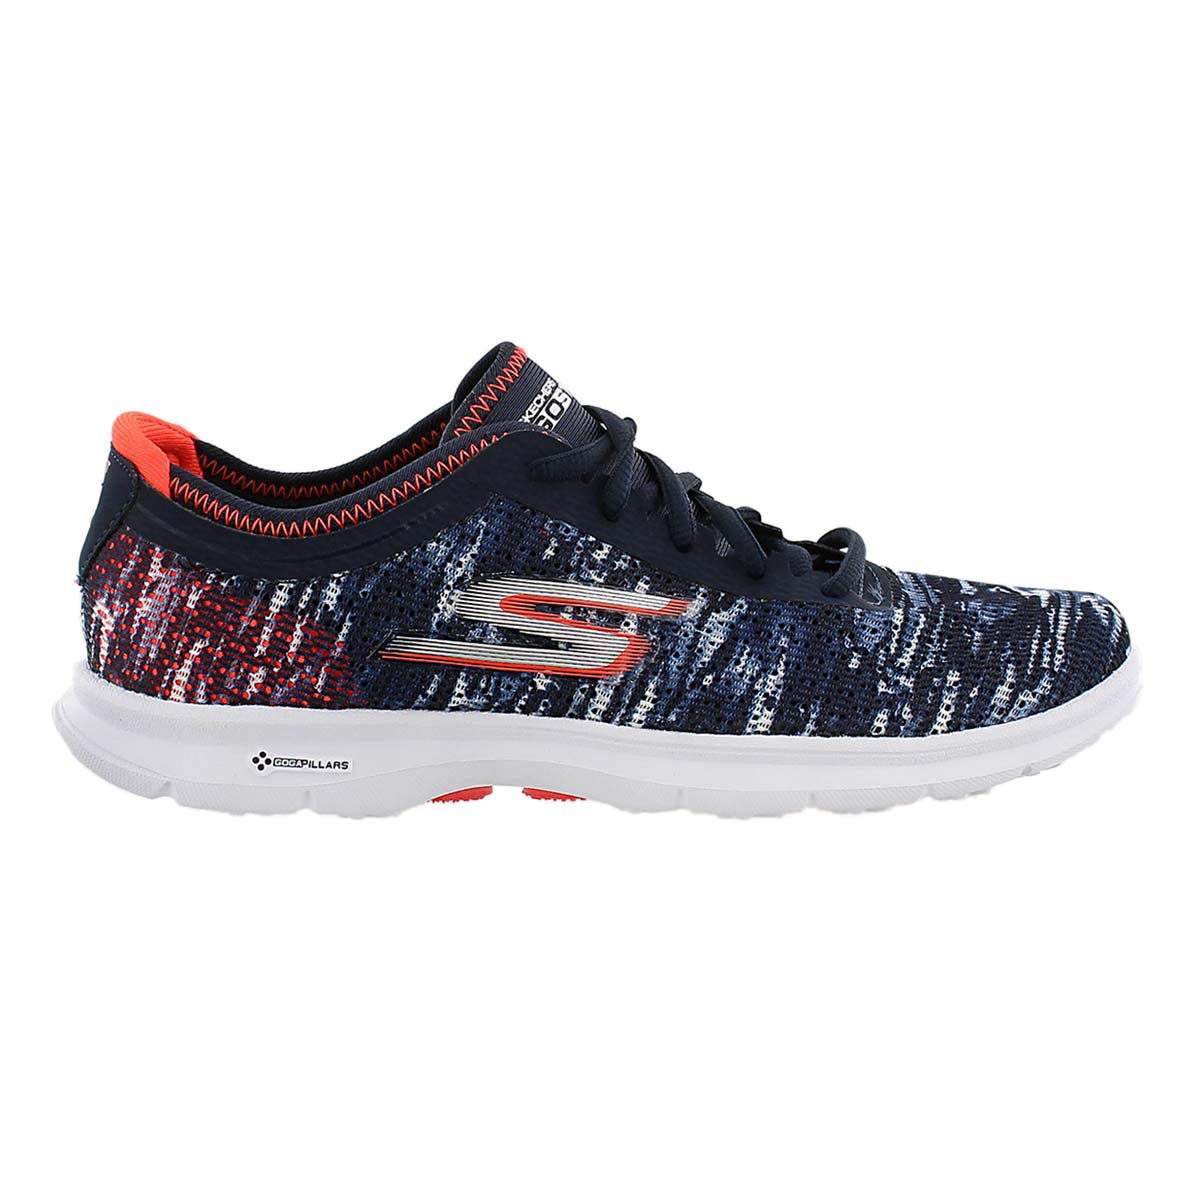 Lds GOstep nvy/coral laceup sneaker